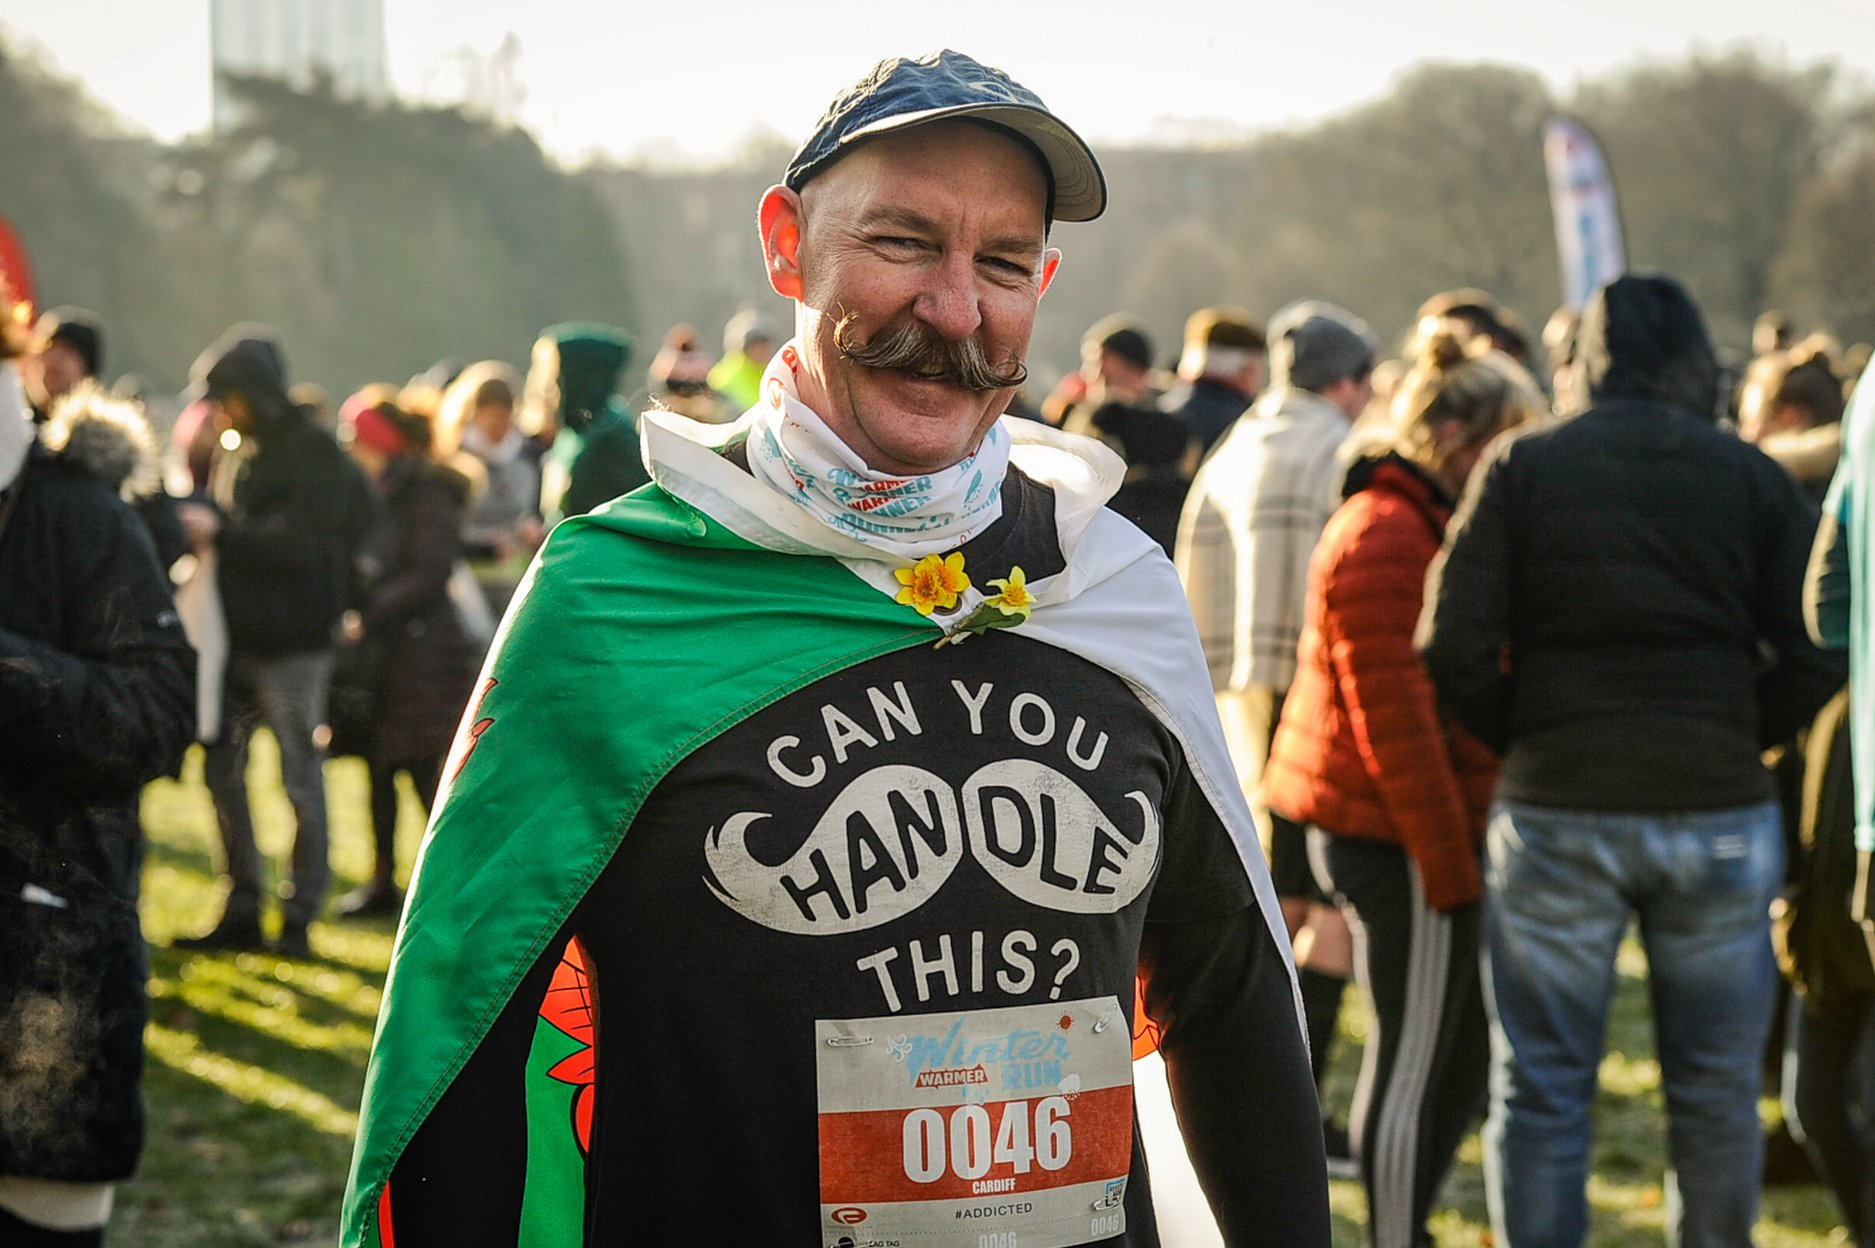 The Cardiff 5k and 10k Winter Warmer Run Bute Park